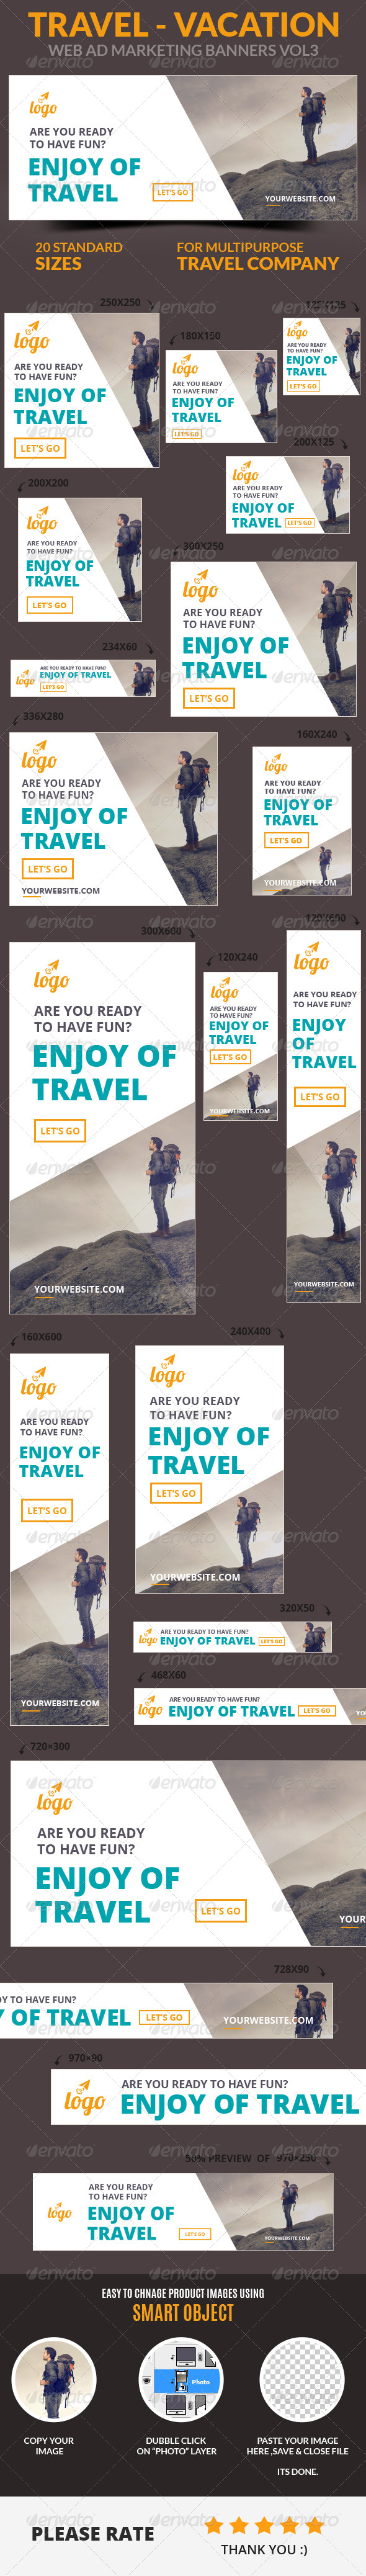 GraphicRiver Travel Vacation Web Ad Marketing Banners Vol3 7246791